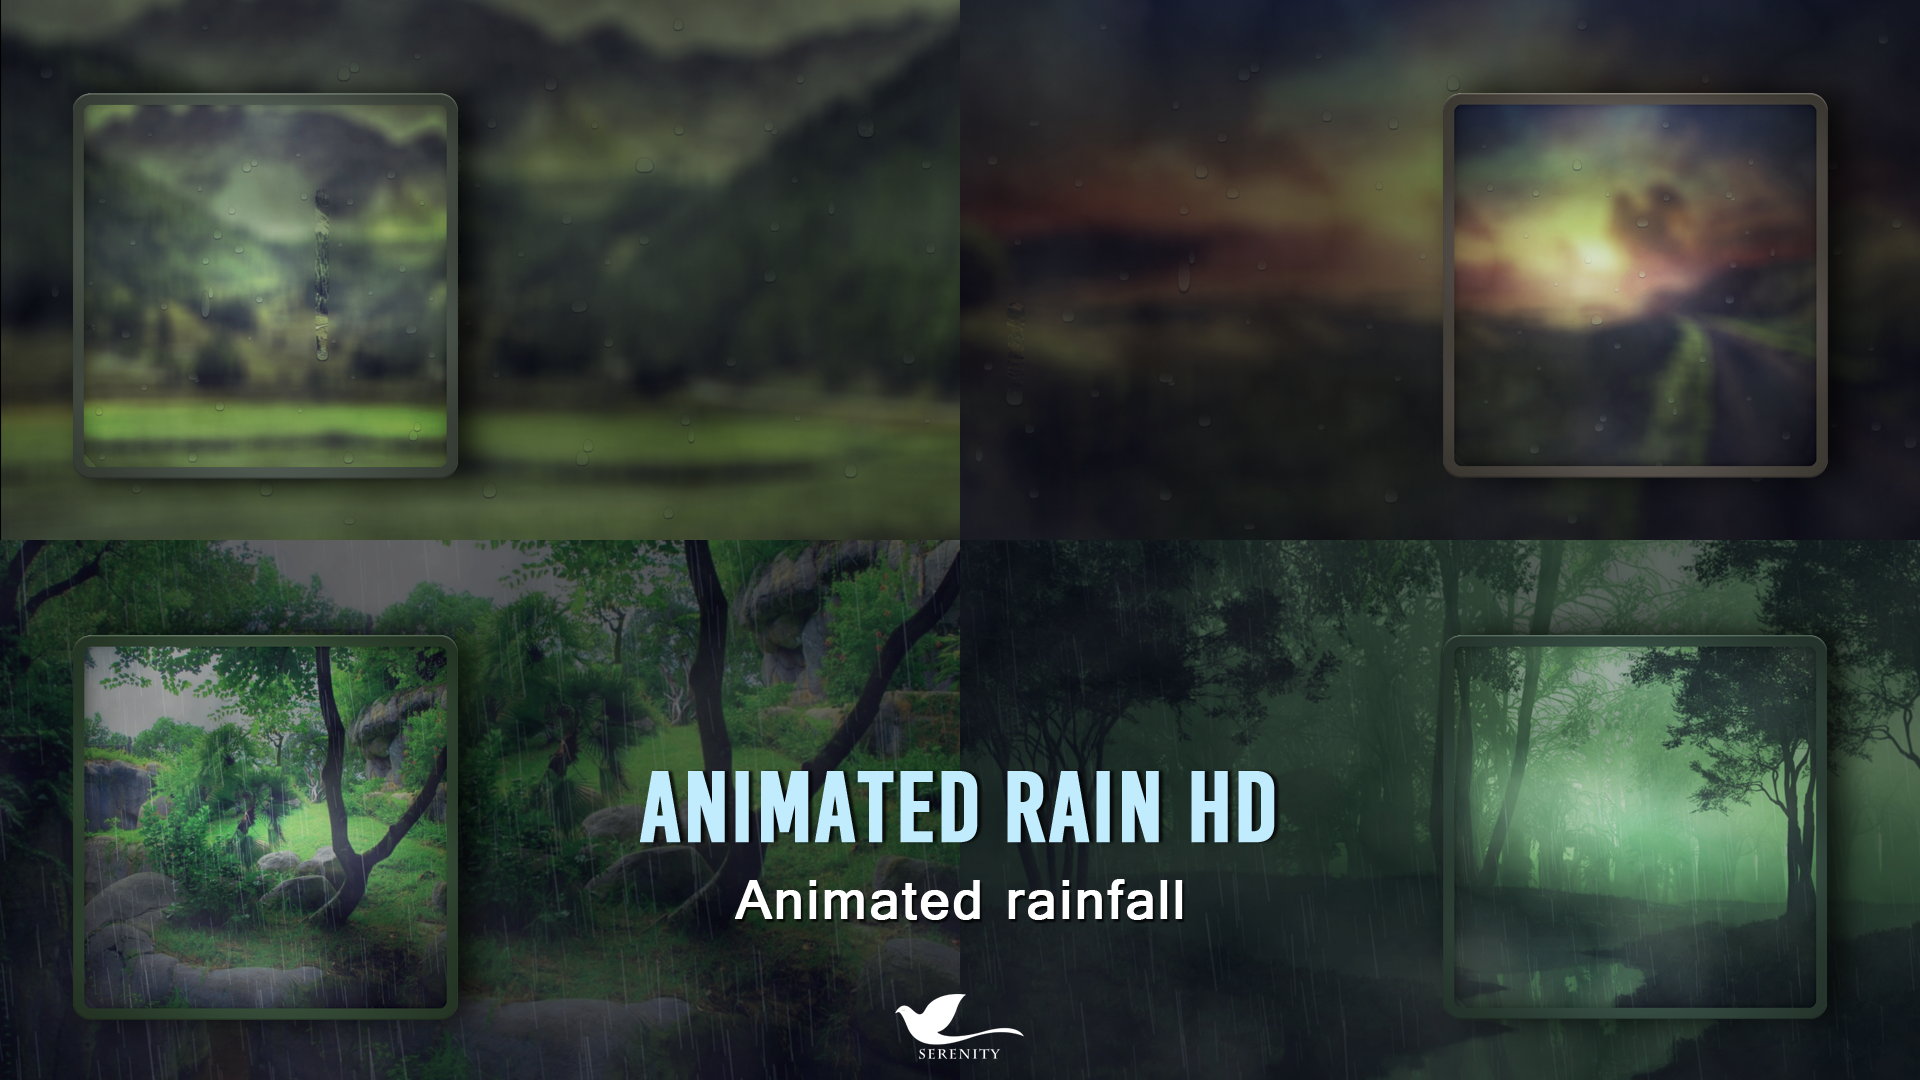 amazon com animated rain hd animated rainfall appstore for android